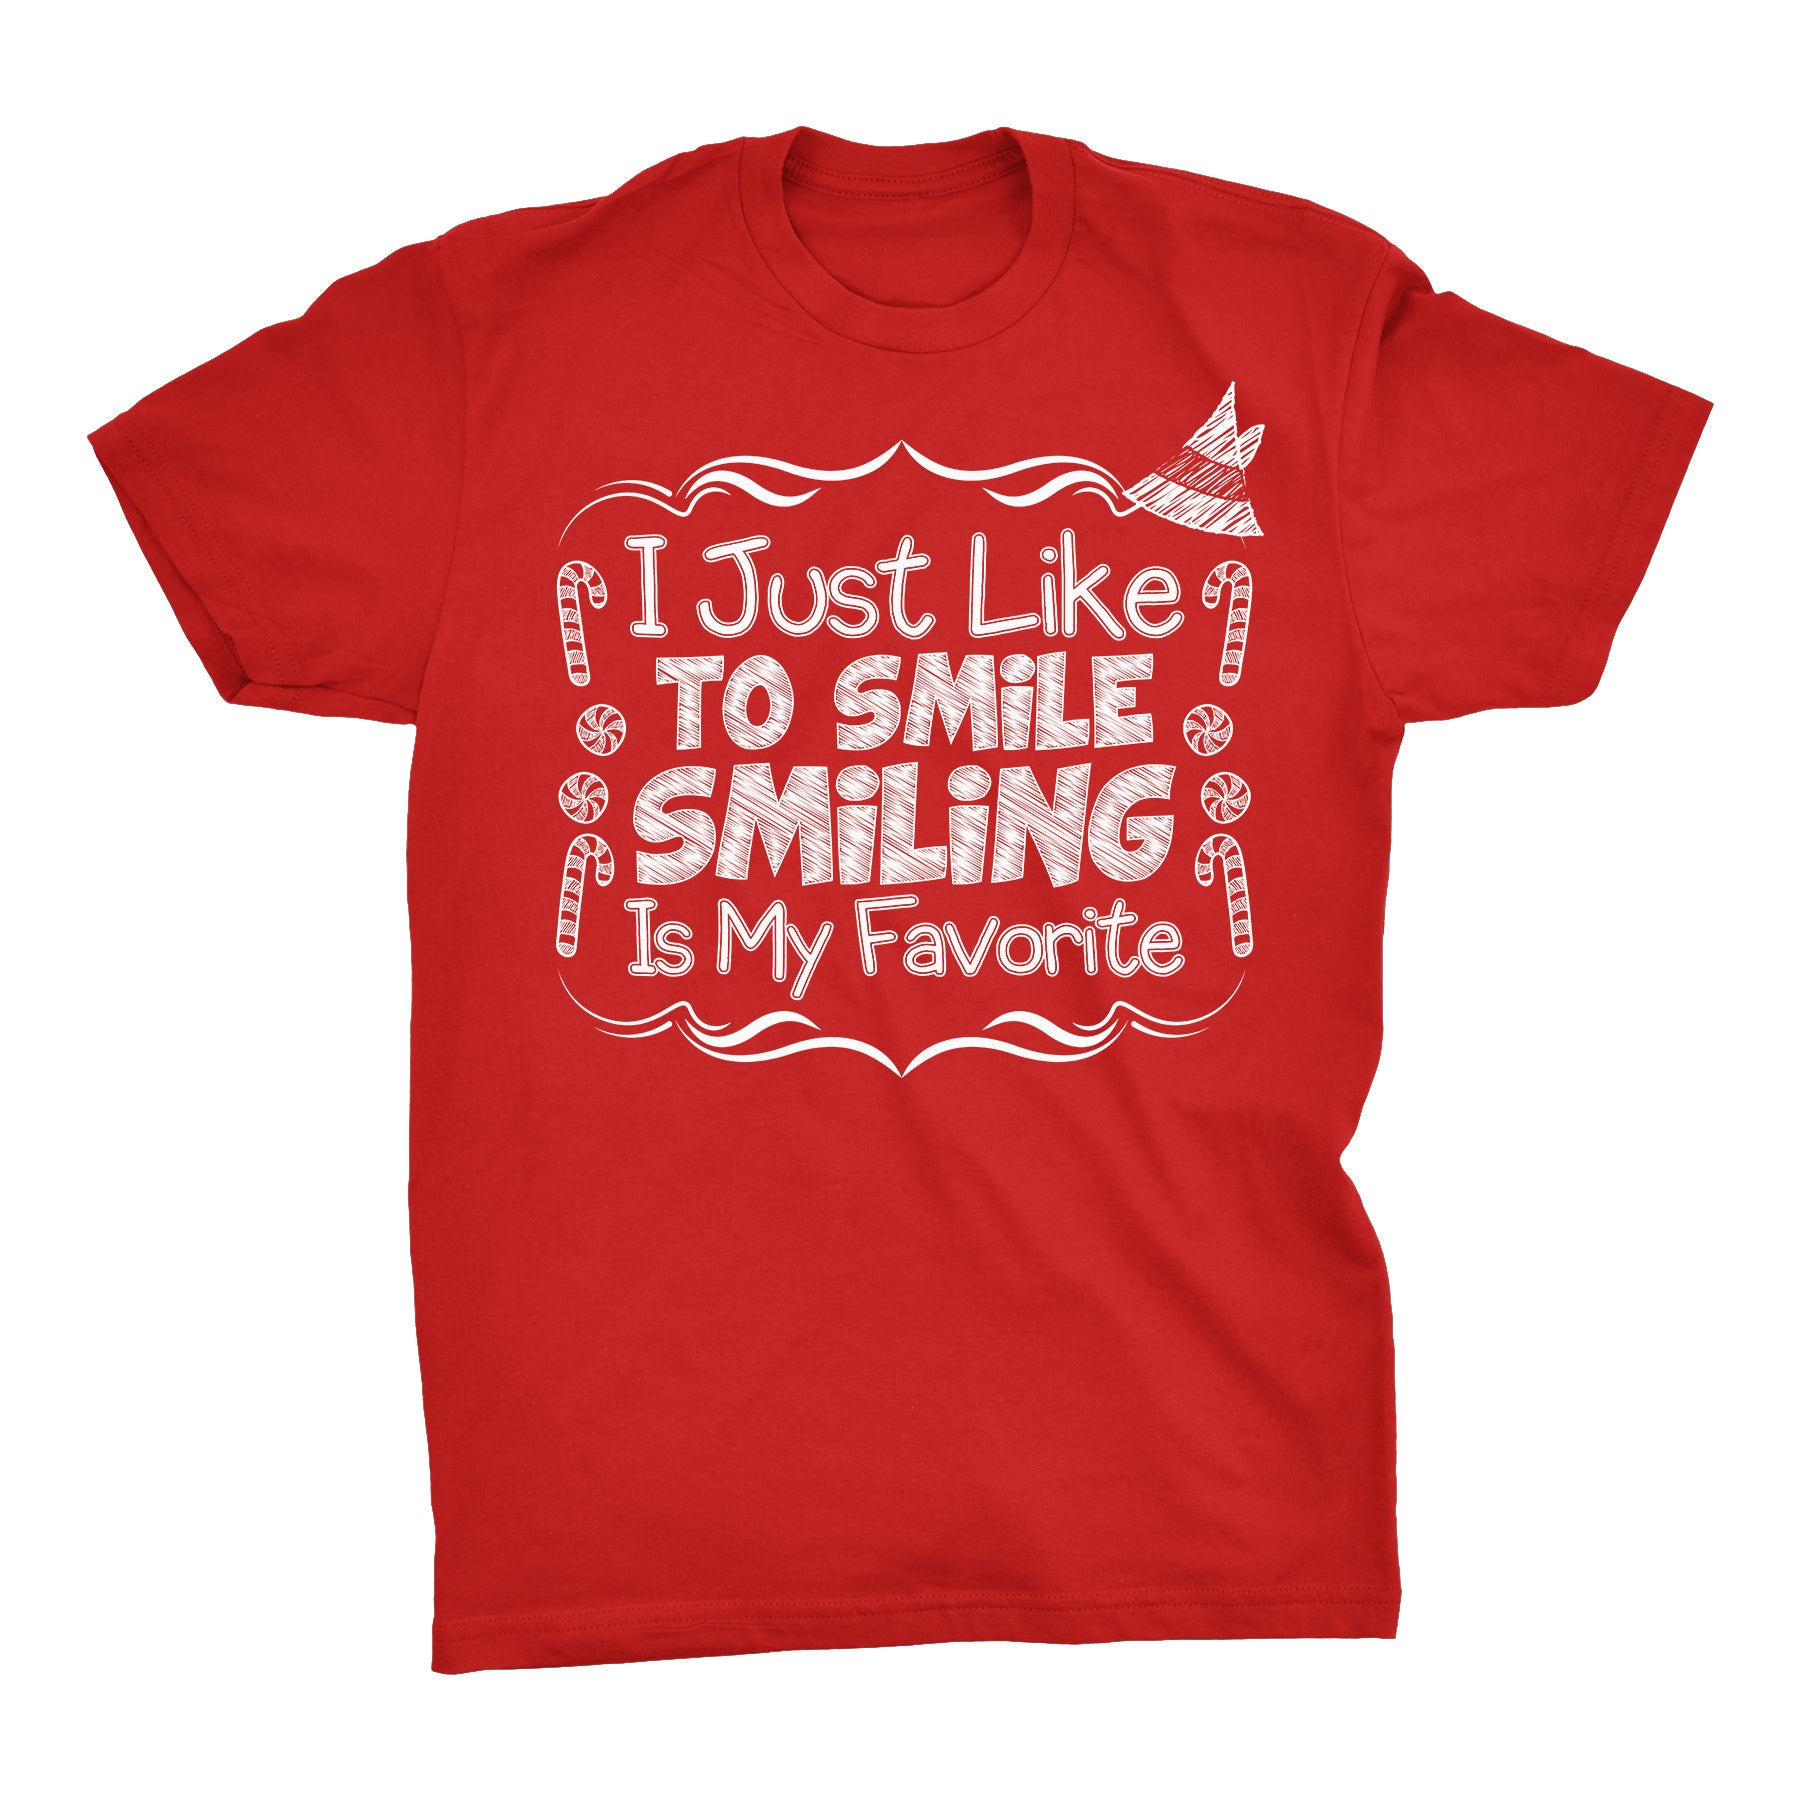 I Just Like To Smile - Christmas T-shirt